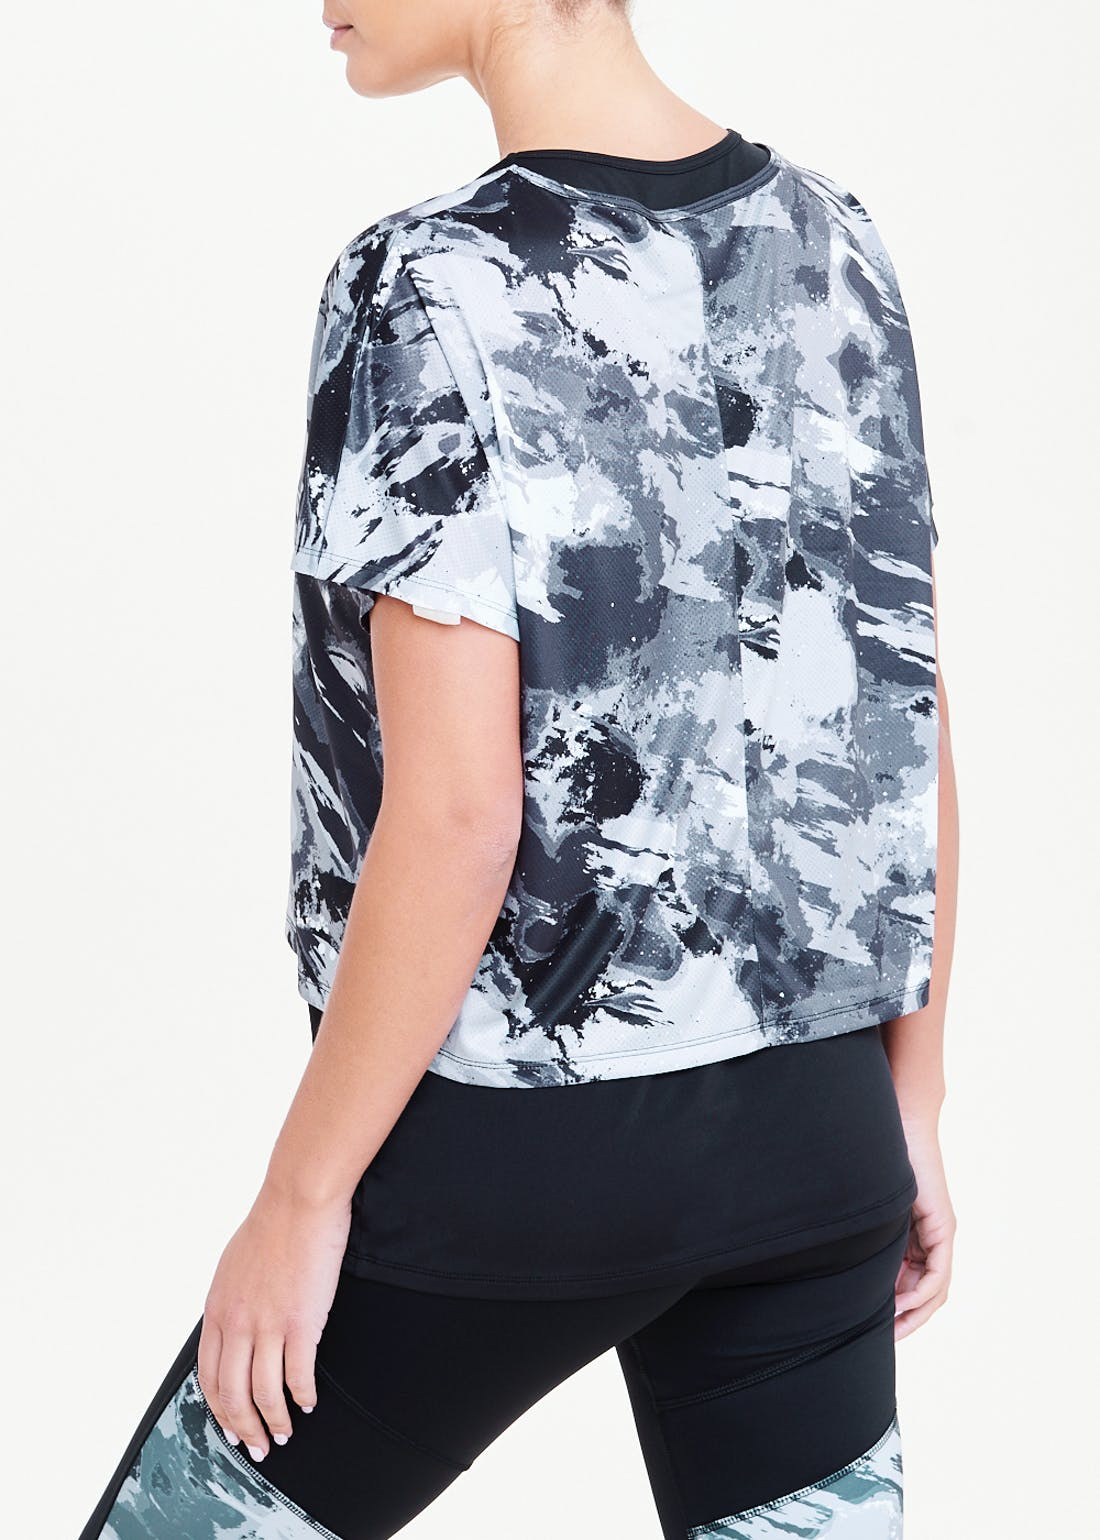 Souluxe Grey Smudge Print 2 in 1 Gym Top